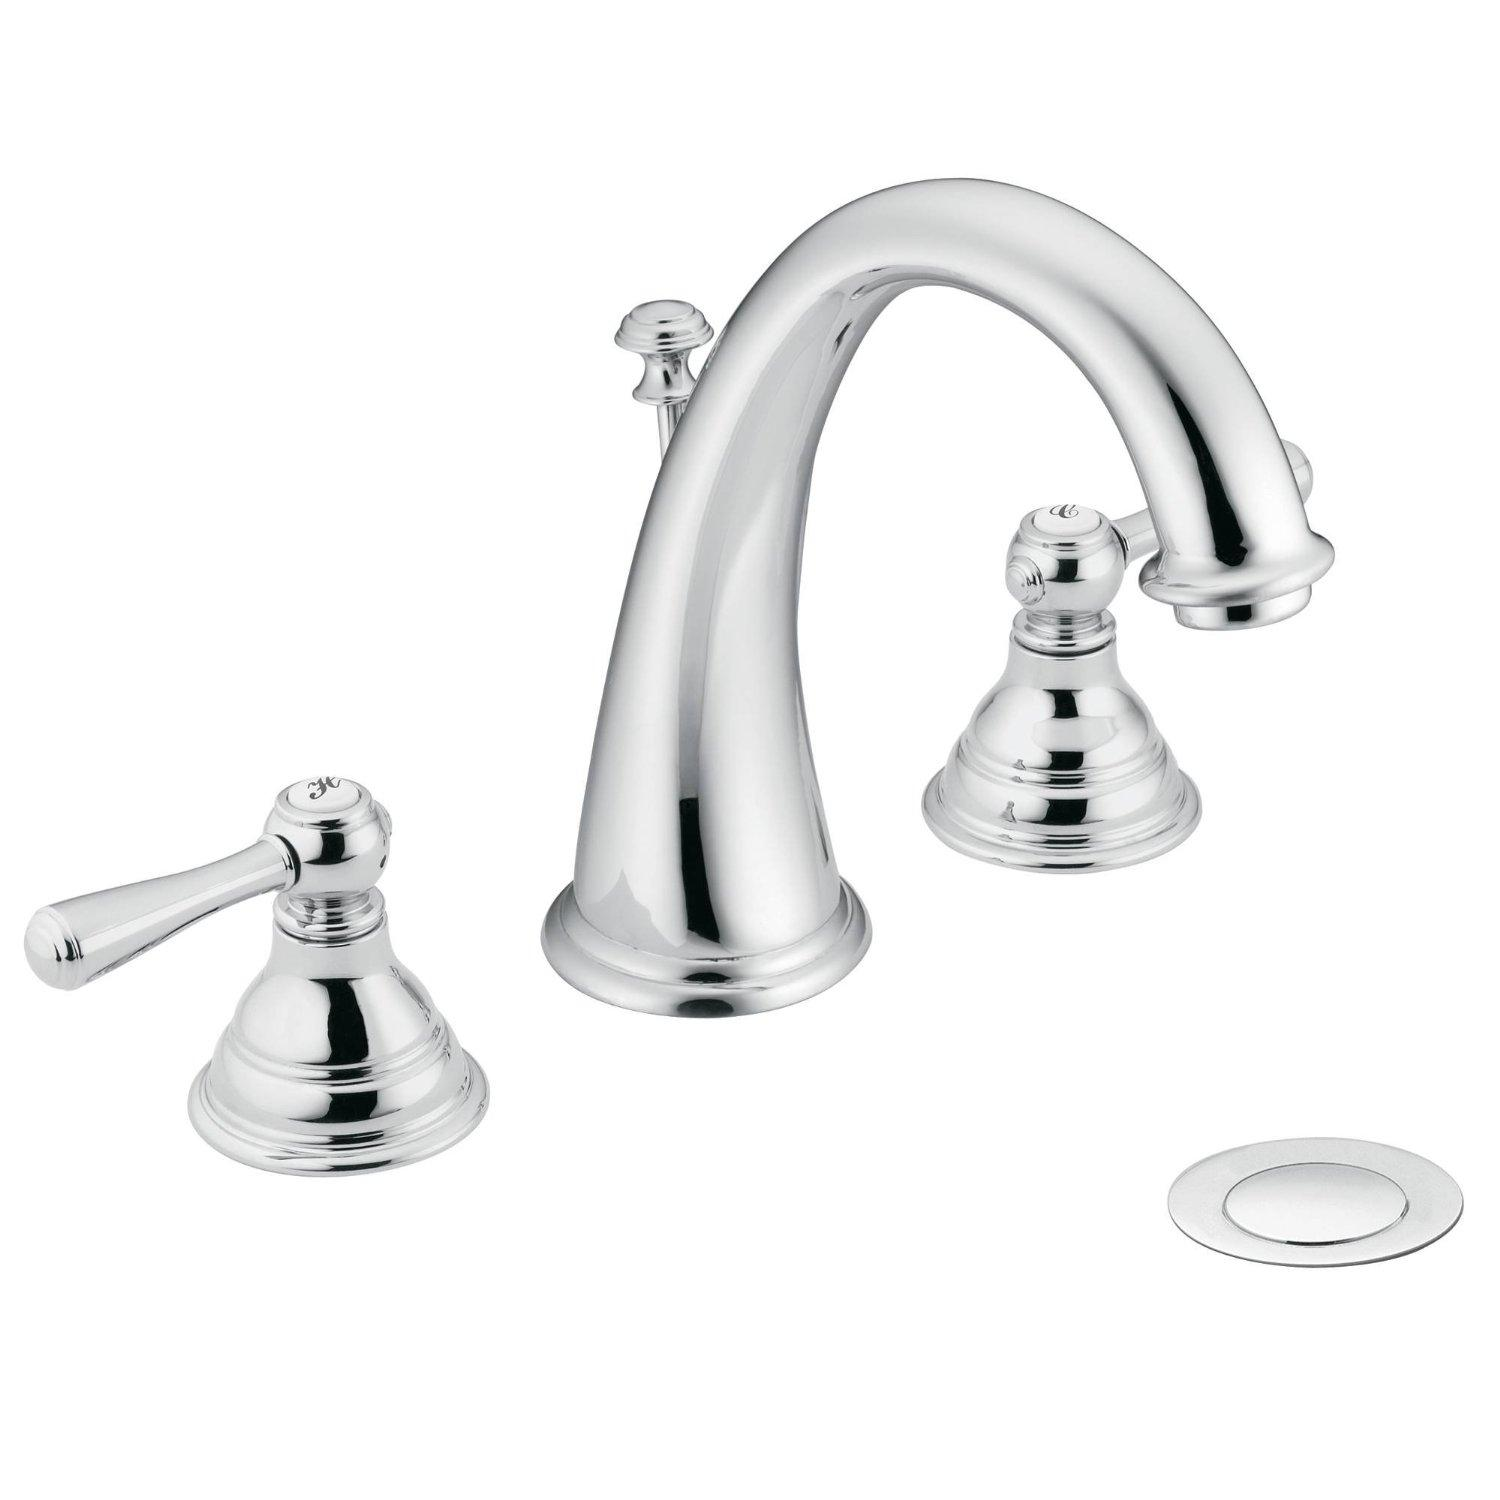 for lowes parts ideas decoration delta kitchen handle pfister sink single faucet moen price stunning or decorating shower replacement faucets bathroom